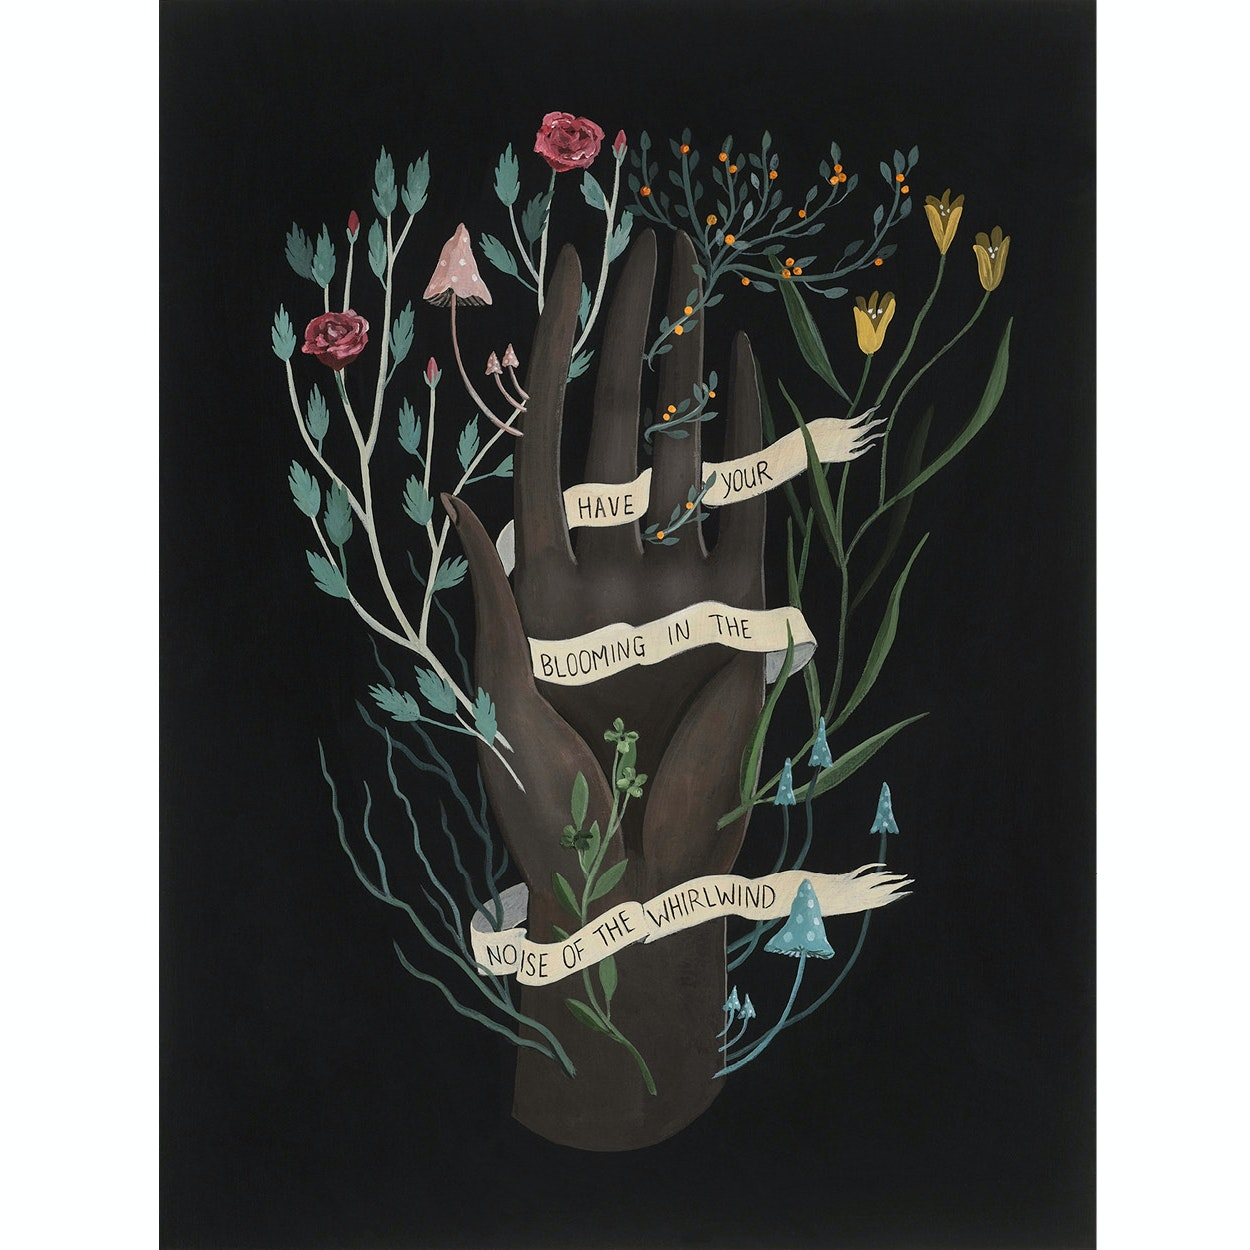 Illustration by Rebecca Chaperon of a hand with flowers sprouting around